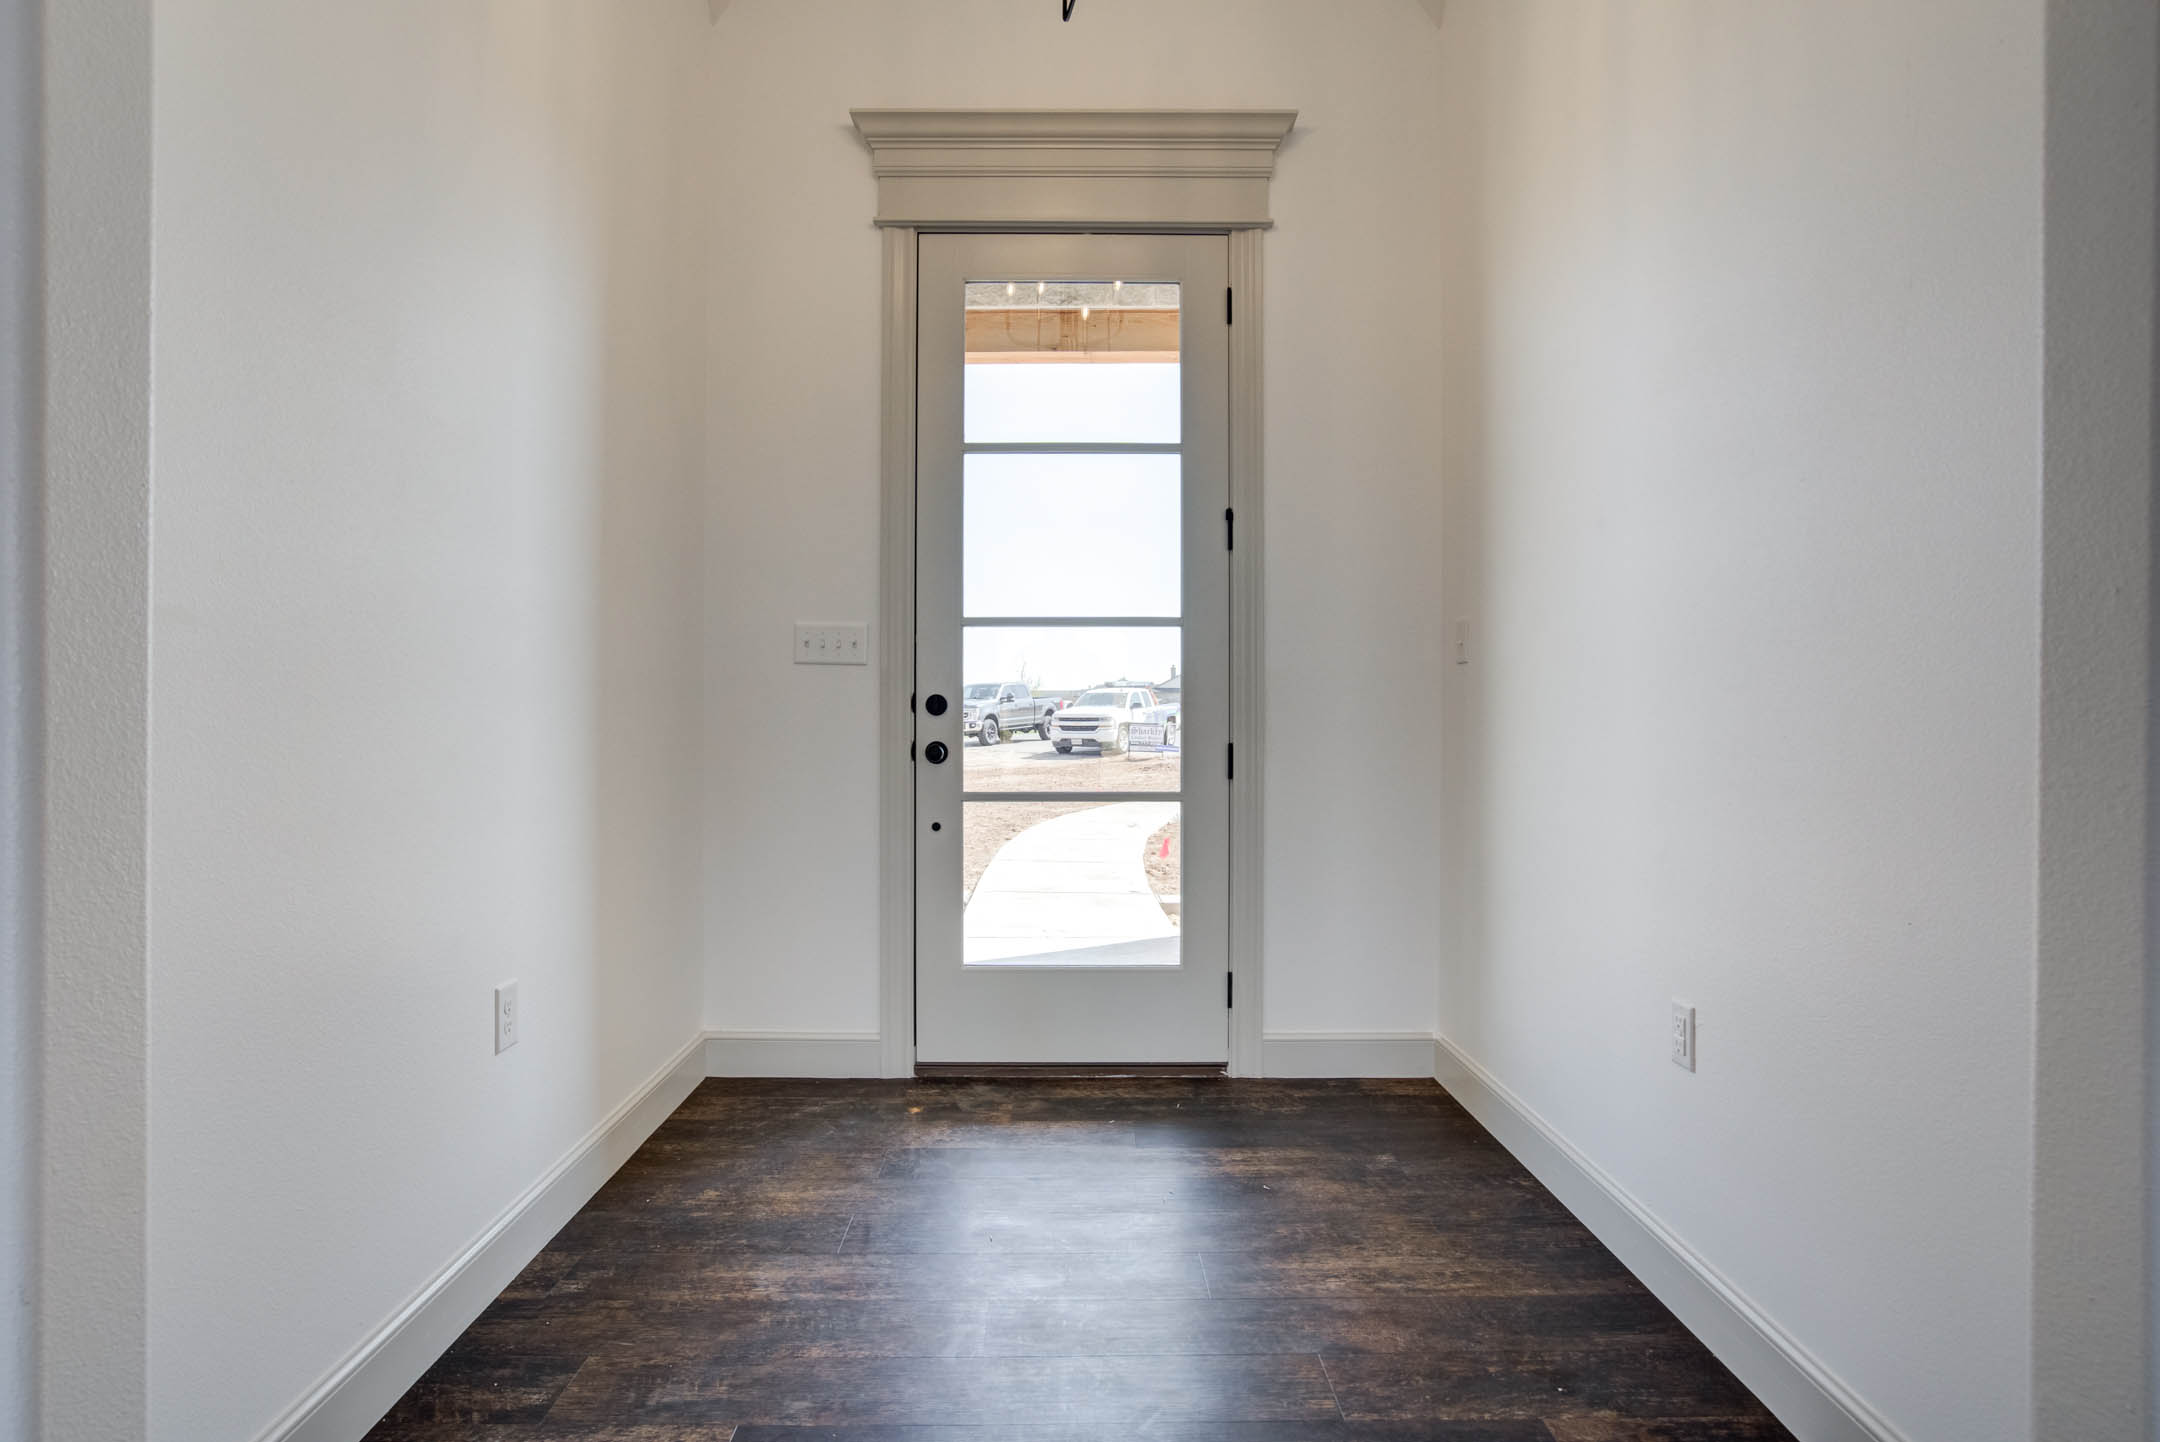 Entry foyer of new home for sale in West Texas near Lubbock.